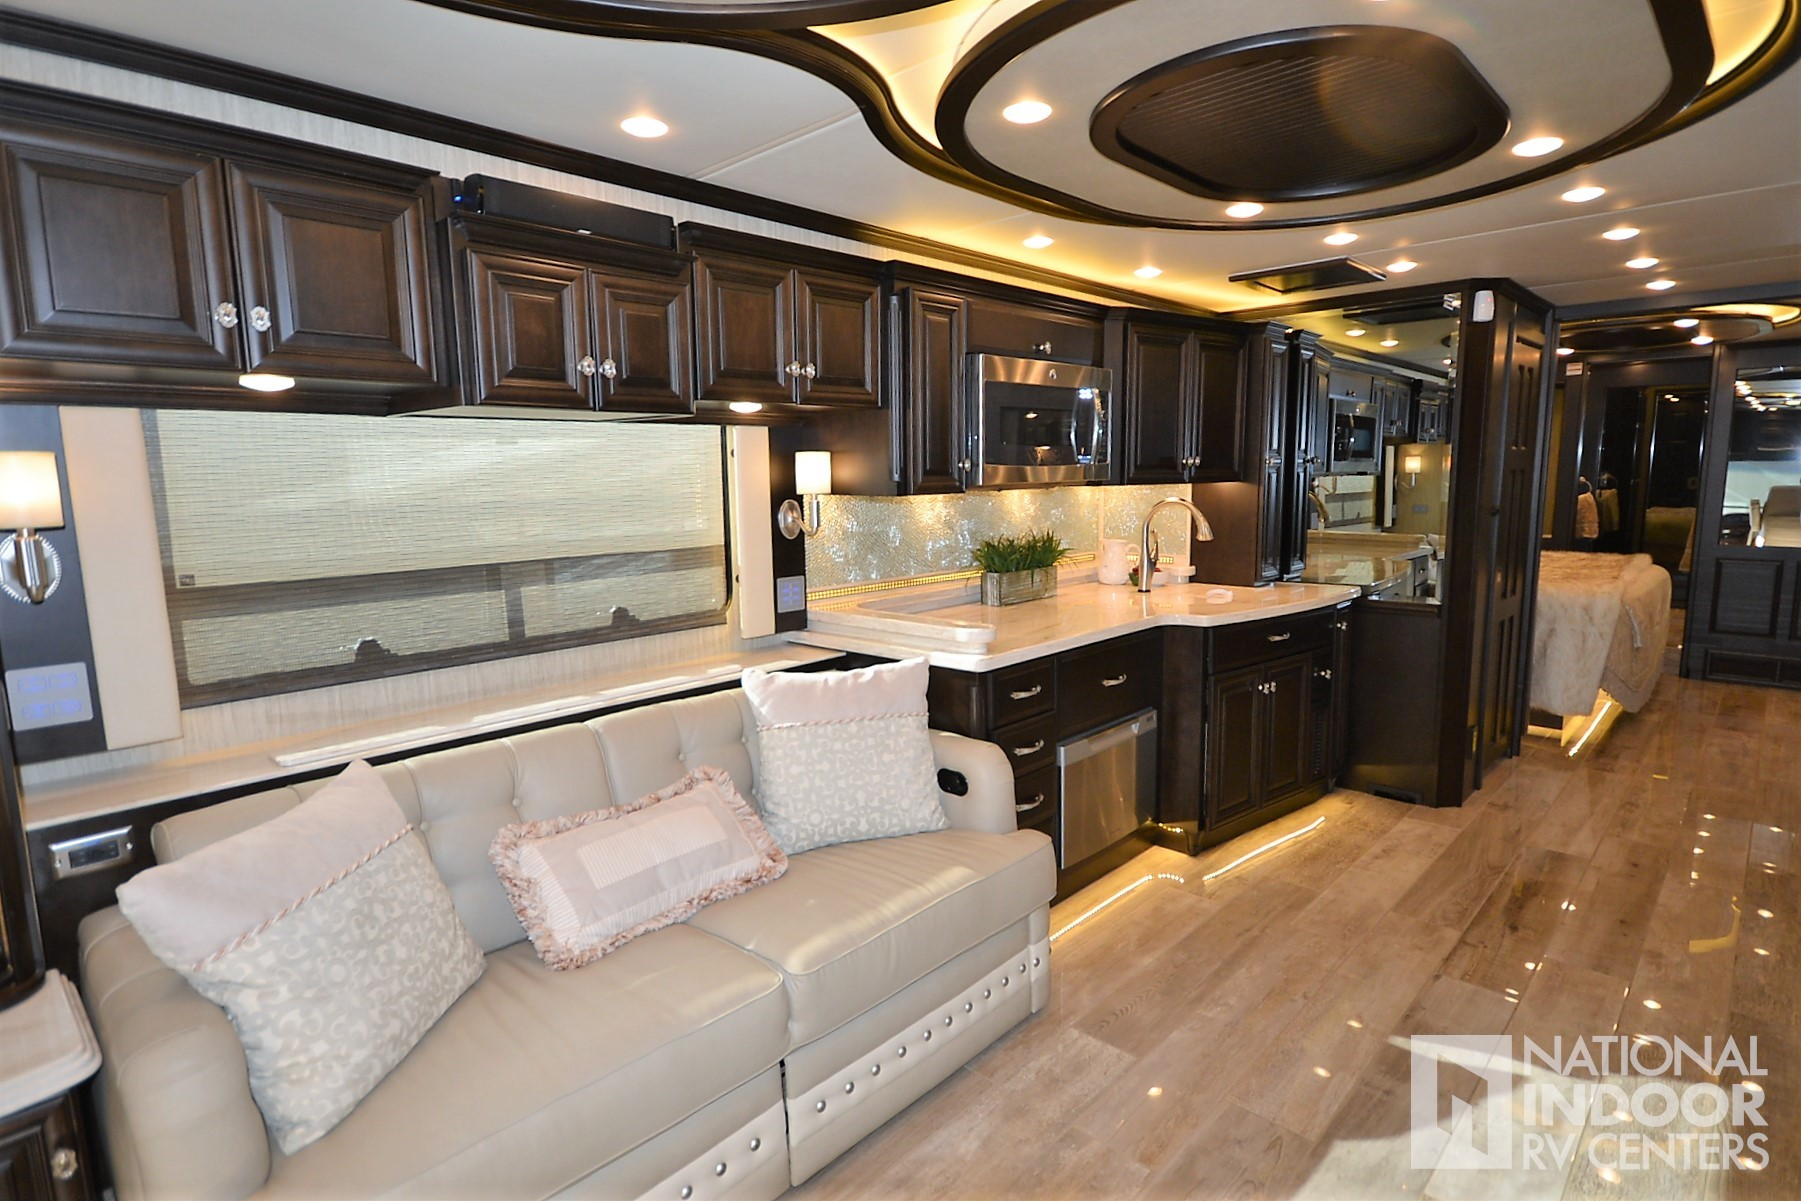 National Indoor Rv Centers Used 2017 Newmar Essex Dallas